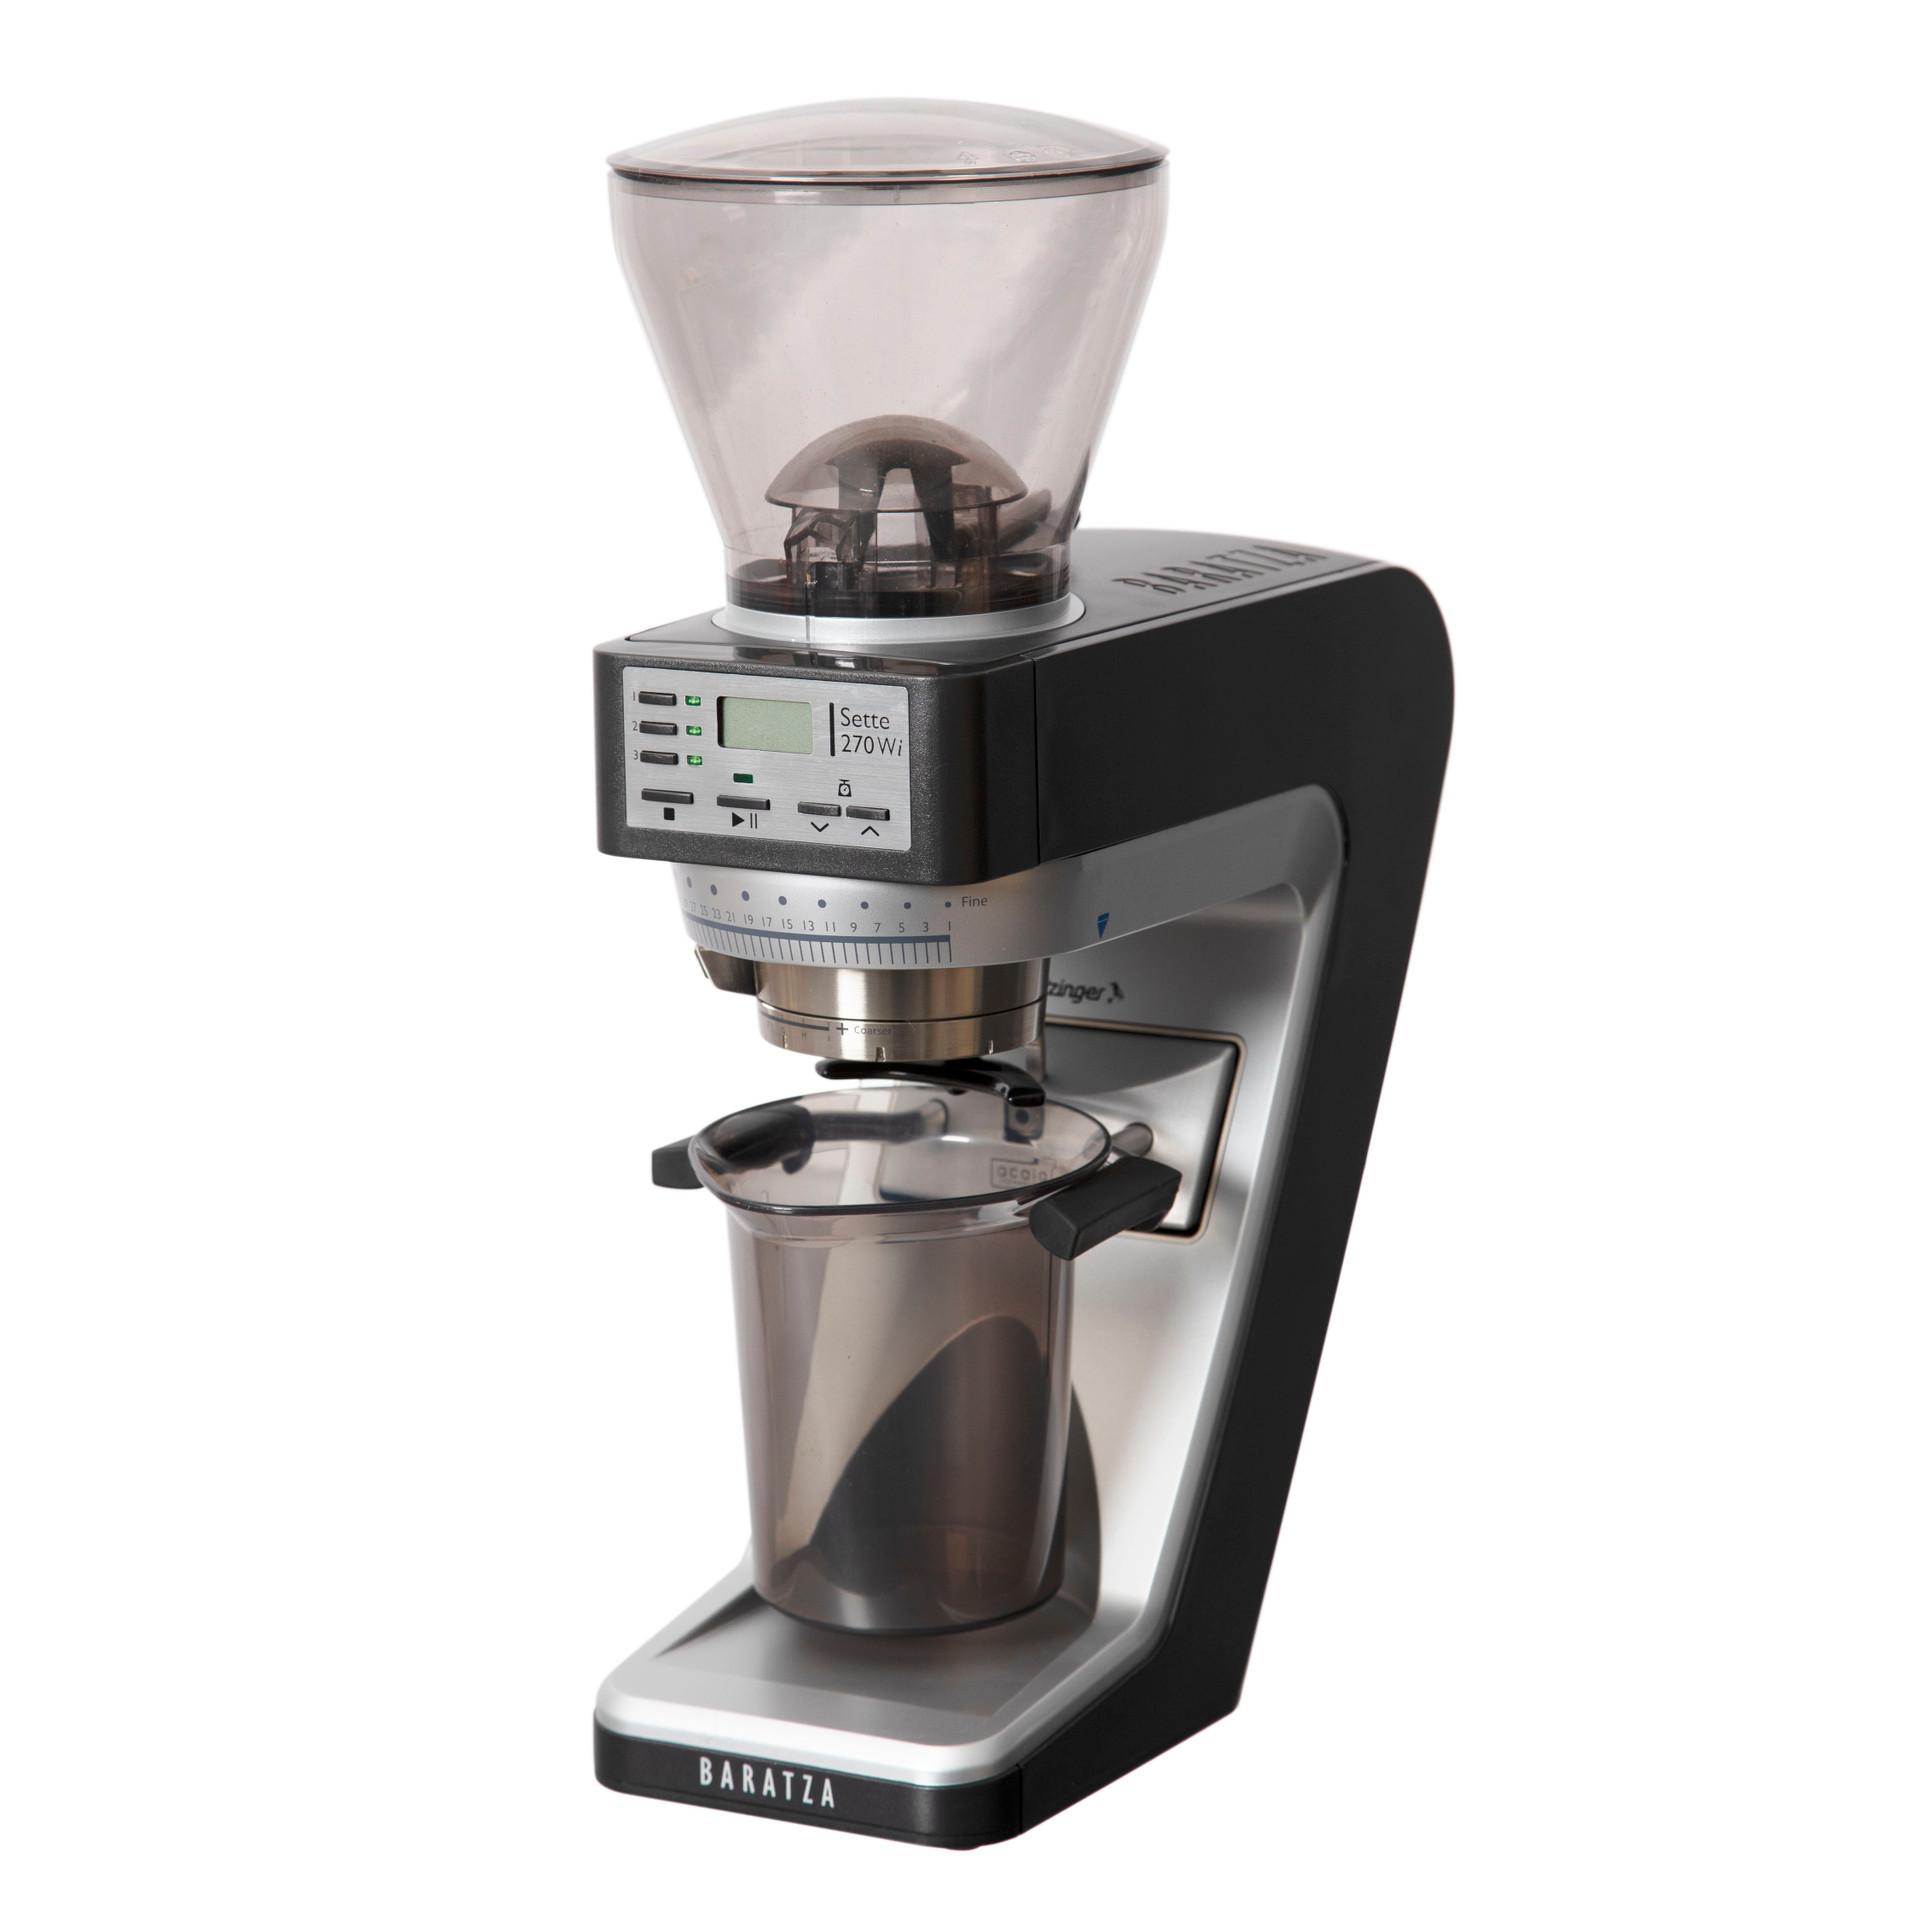 Baratza Sette 270Wi coffee grinder white background